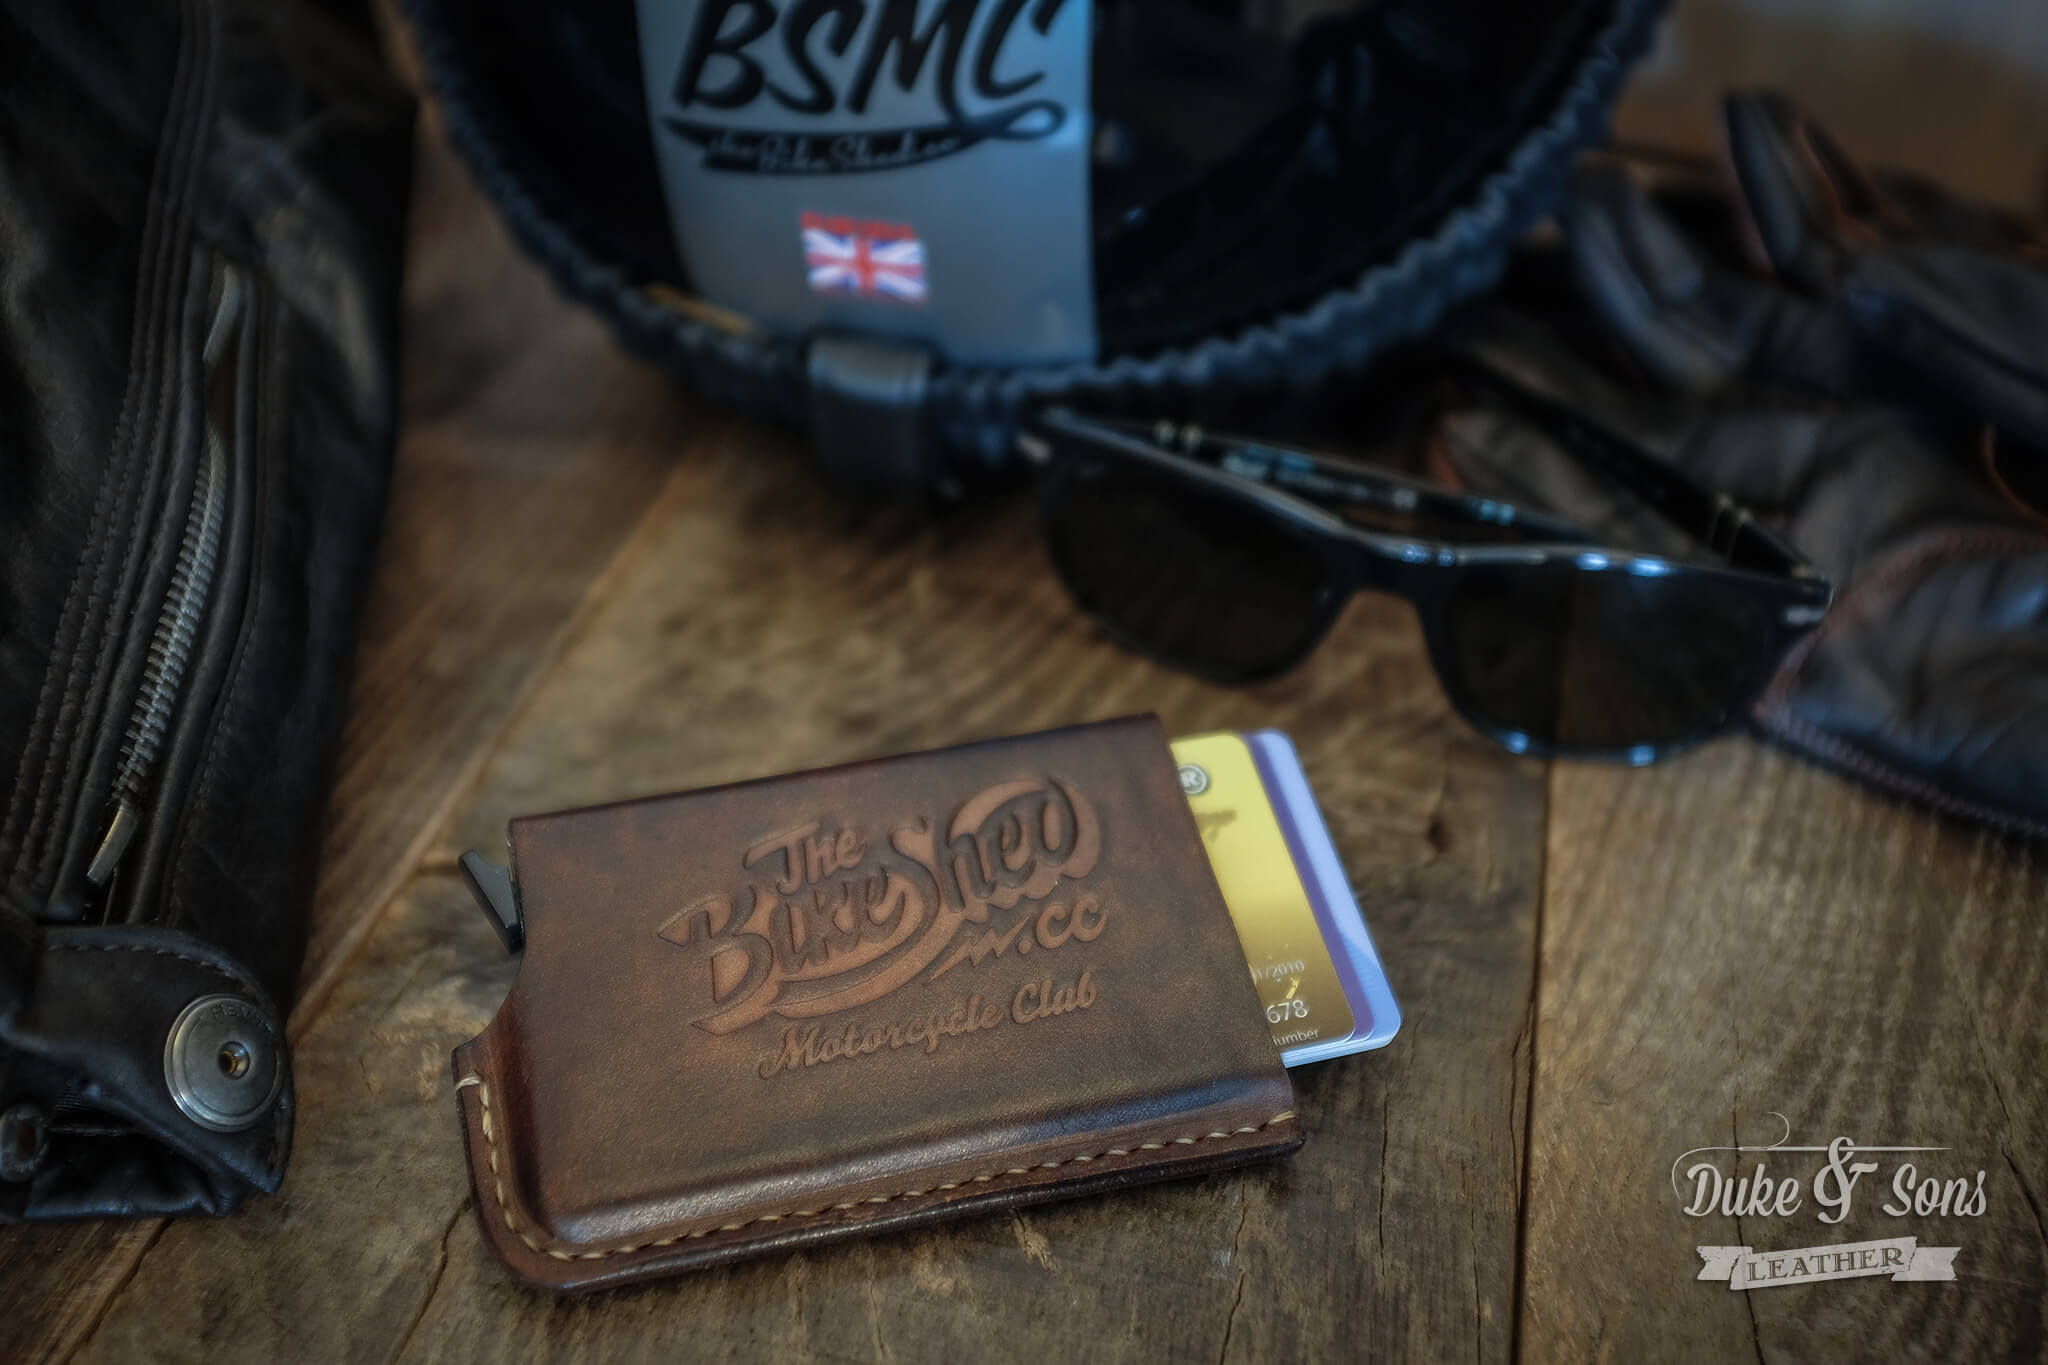 The Bike Shed Motorcycle Club card wallet